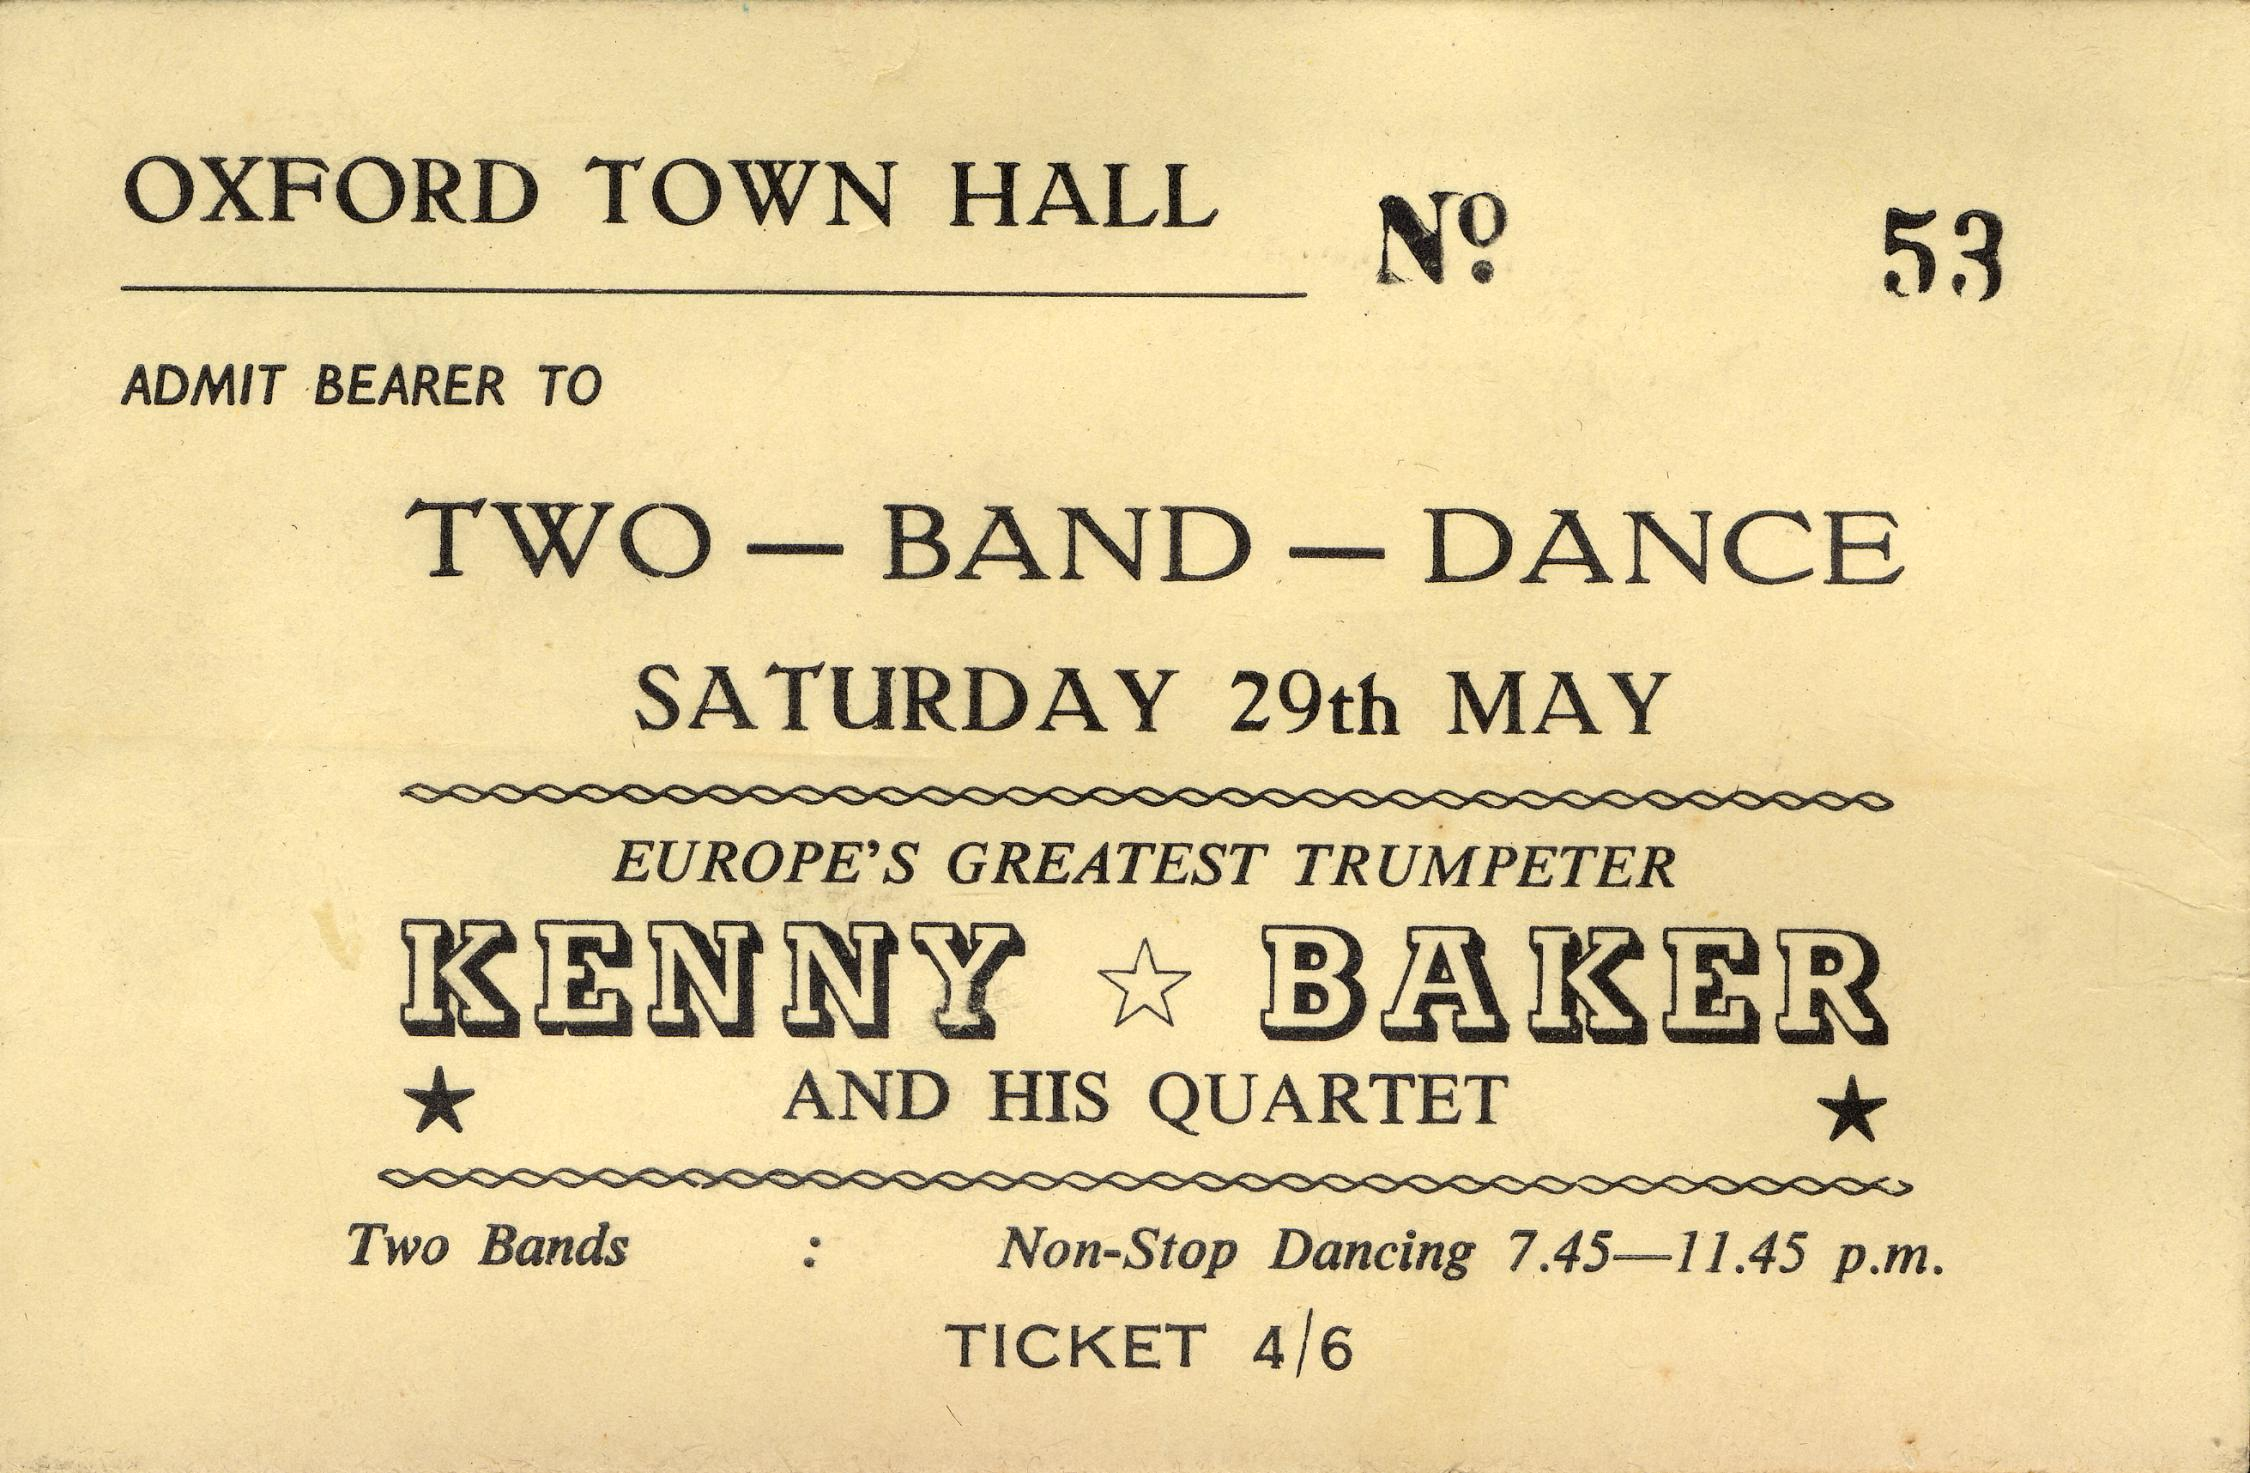 A ticket to a two band dance with Kenny Baker at the Town Hall